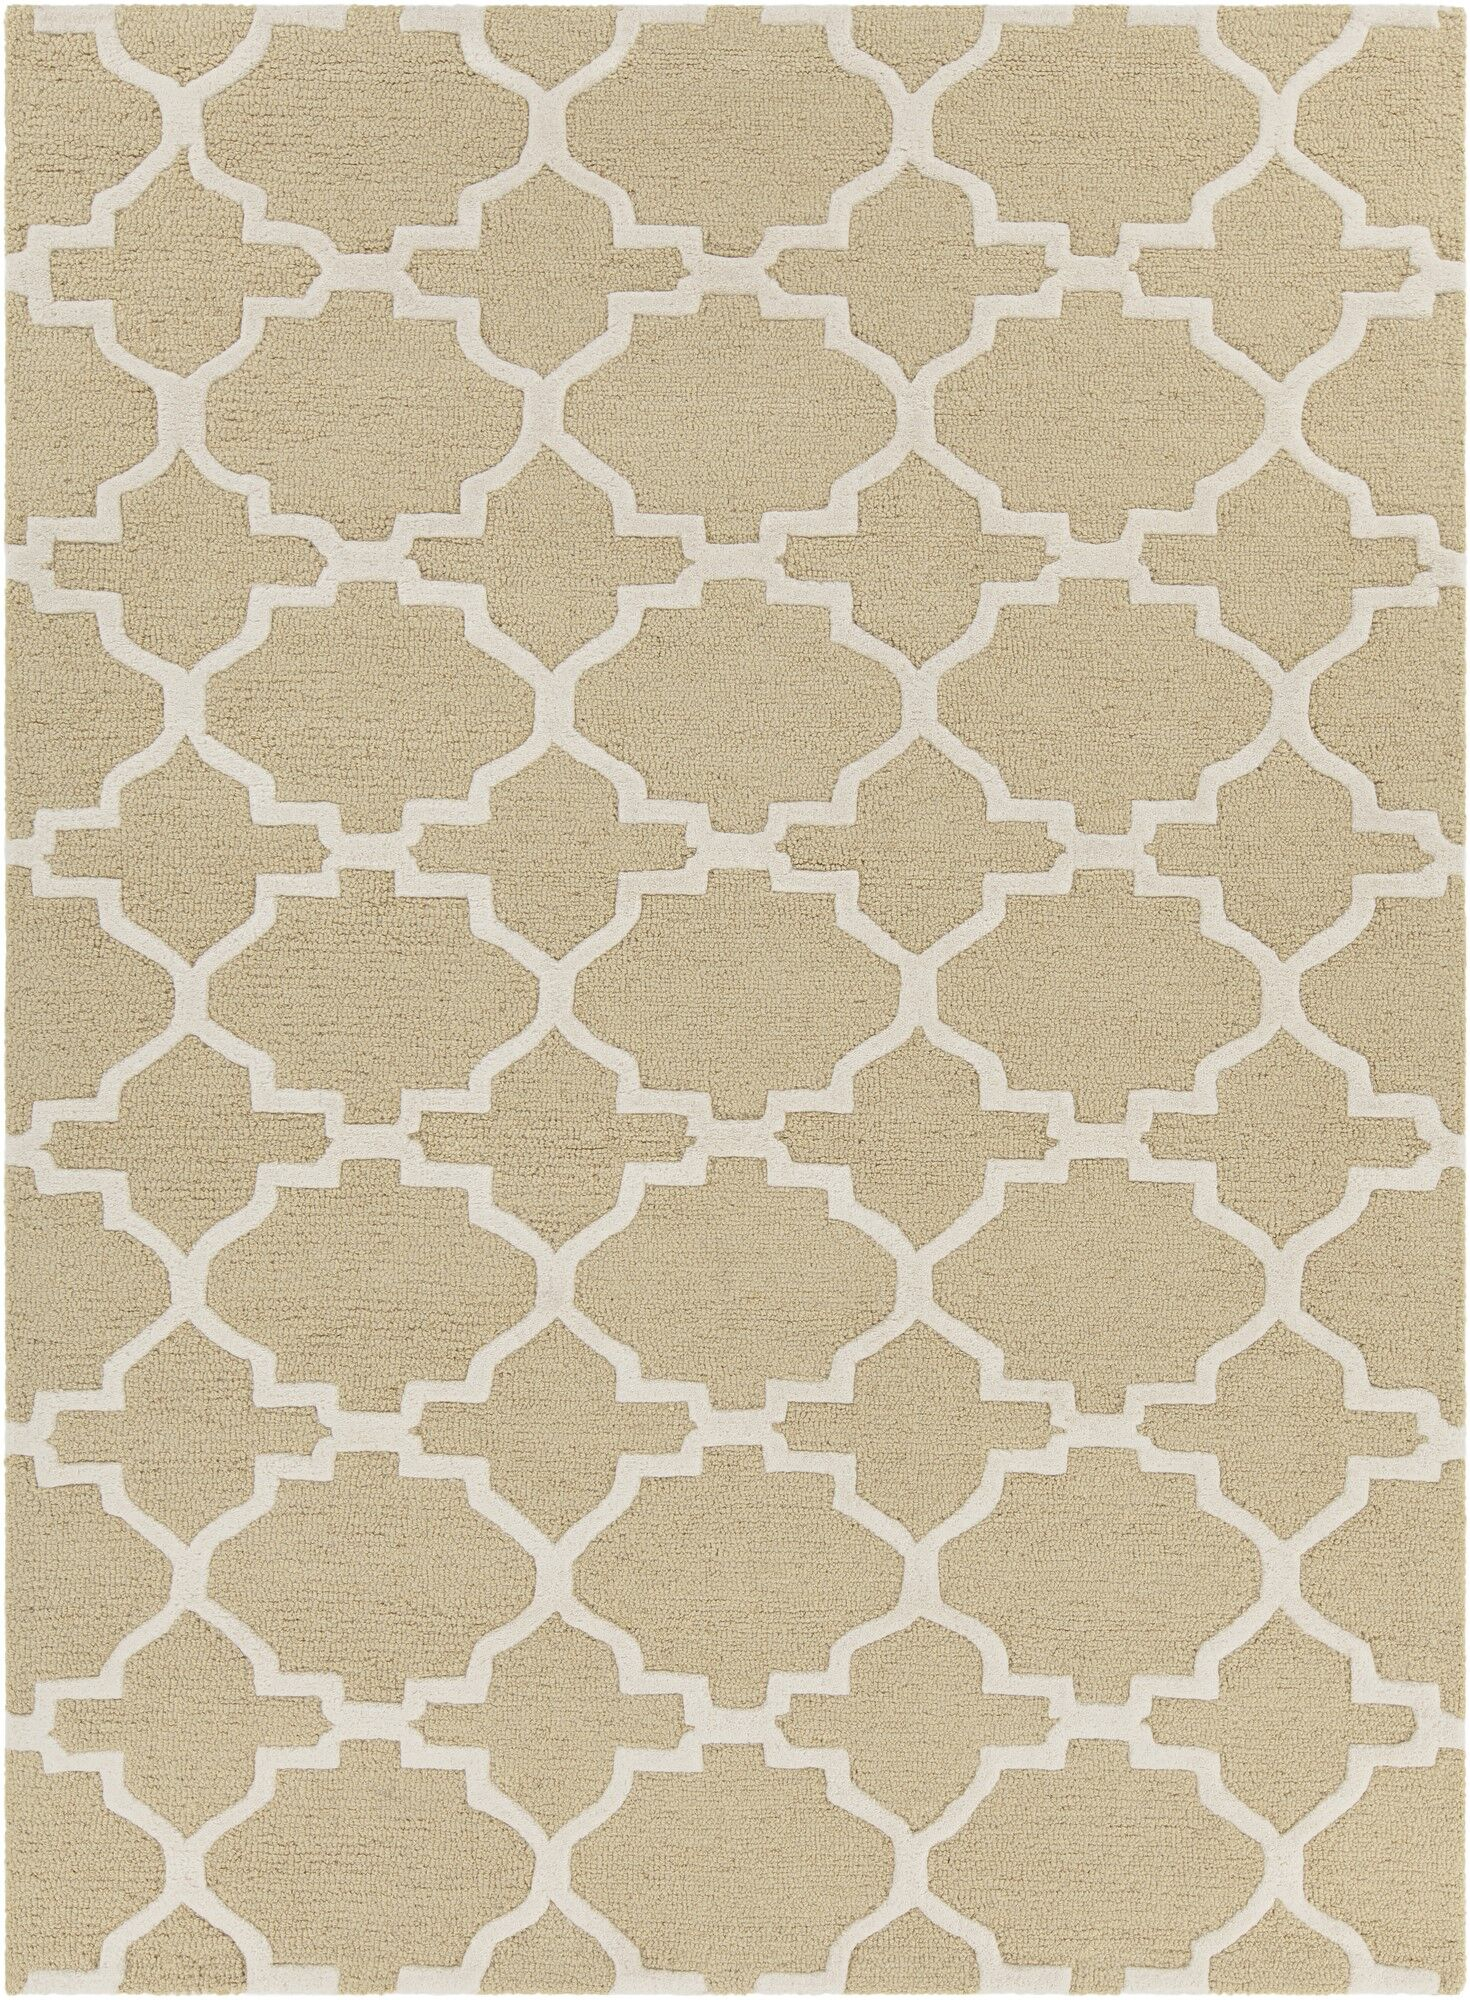 Electra Hand Tufted Rectangle Contemporary Yellow/Cream Area Rug Rug Size: 7' x 10'